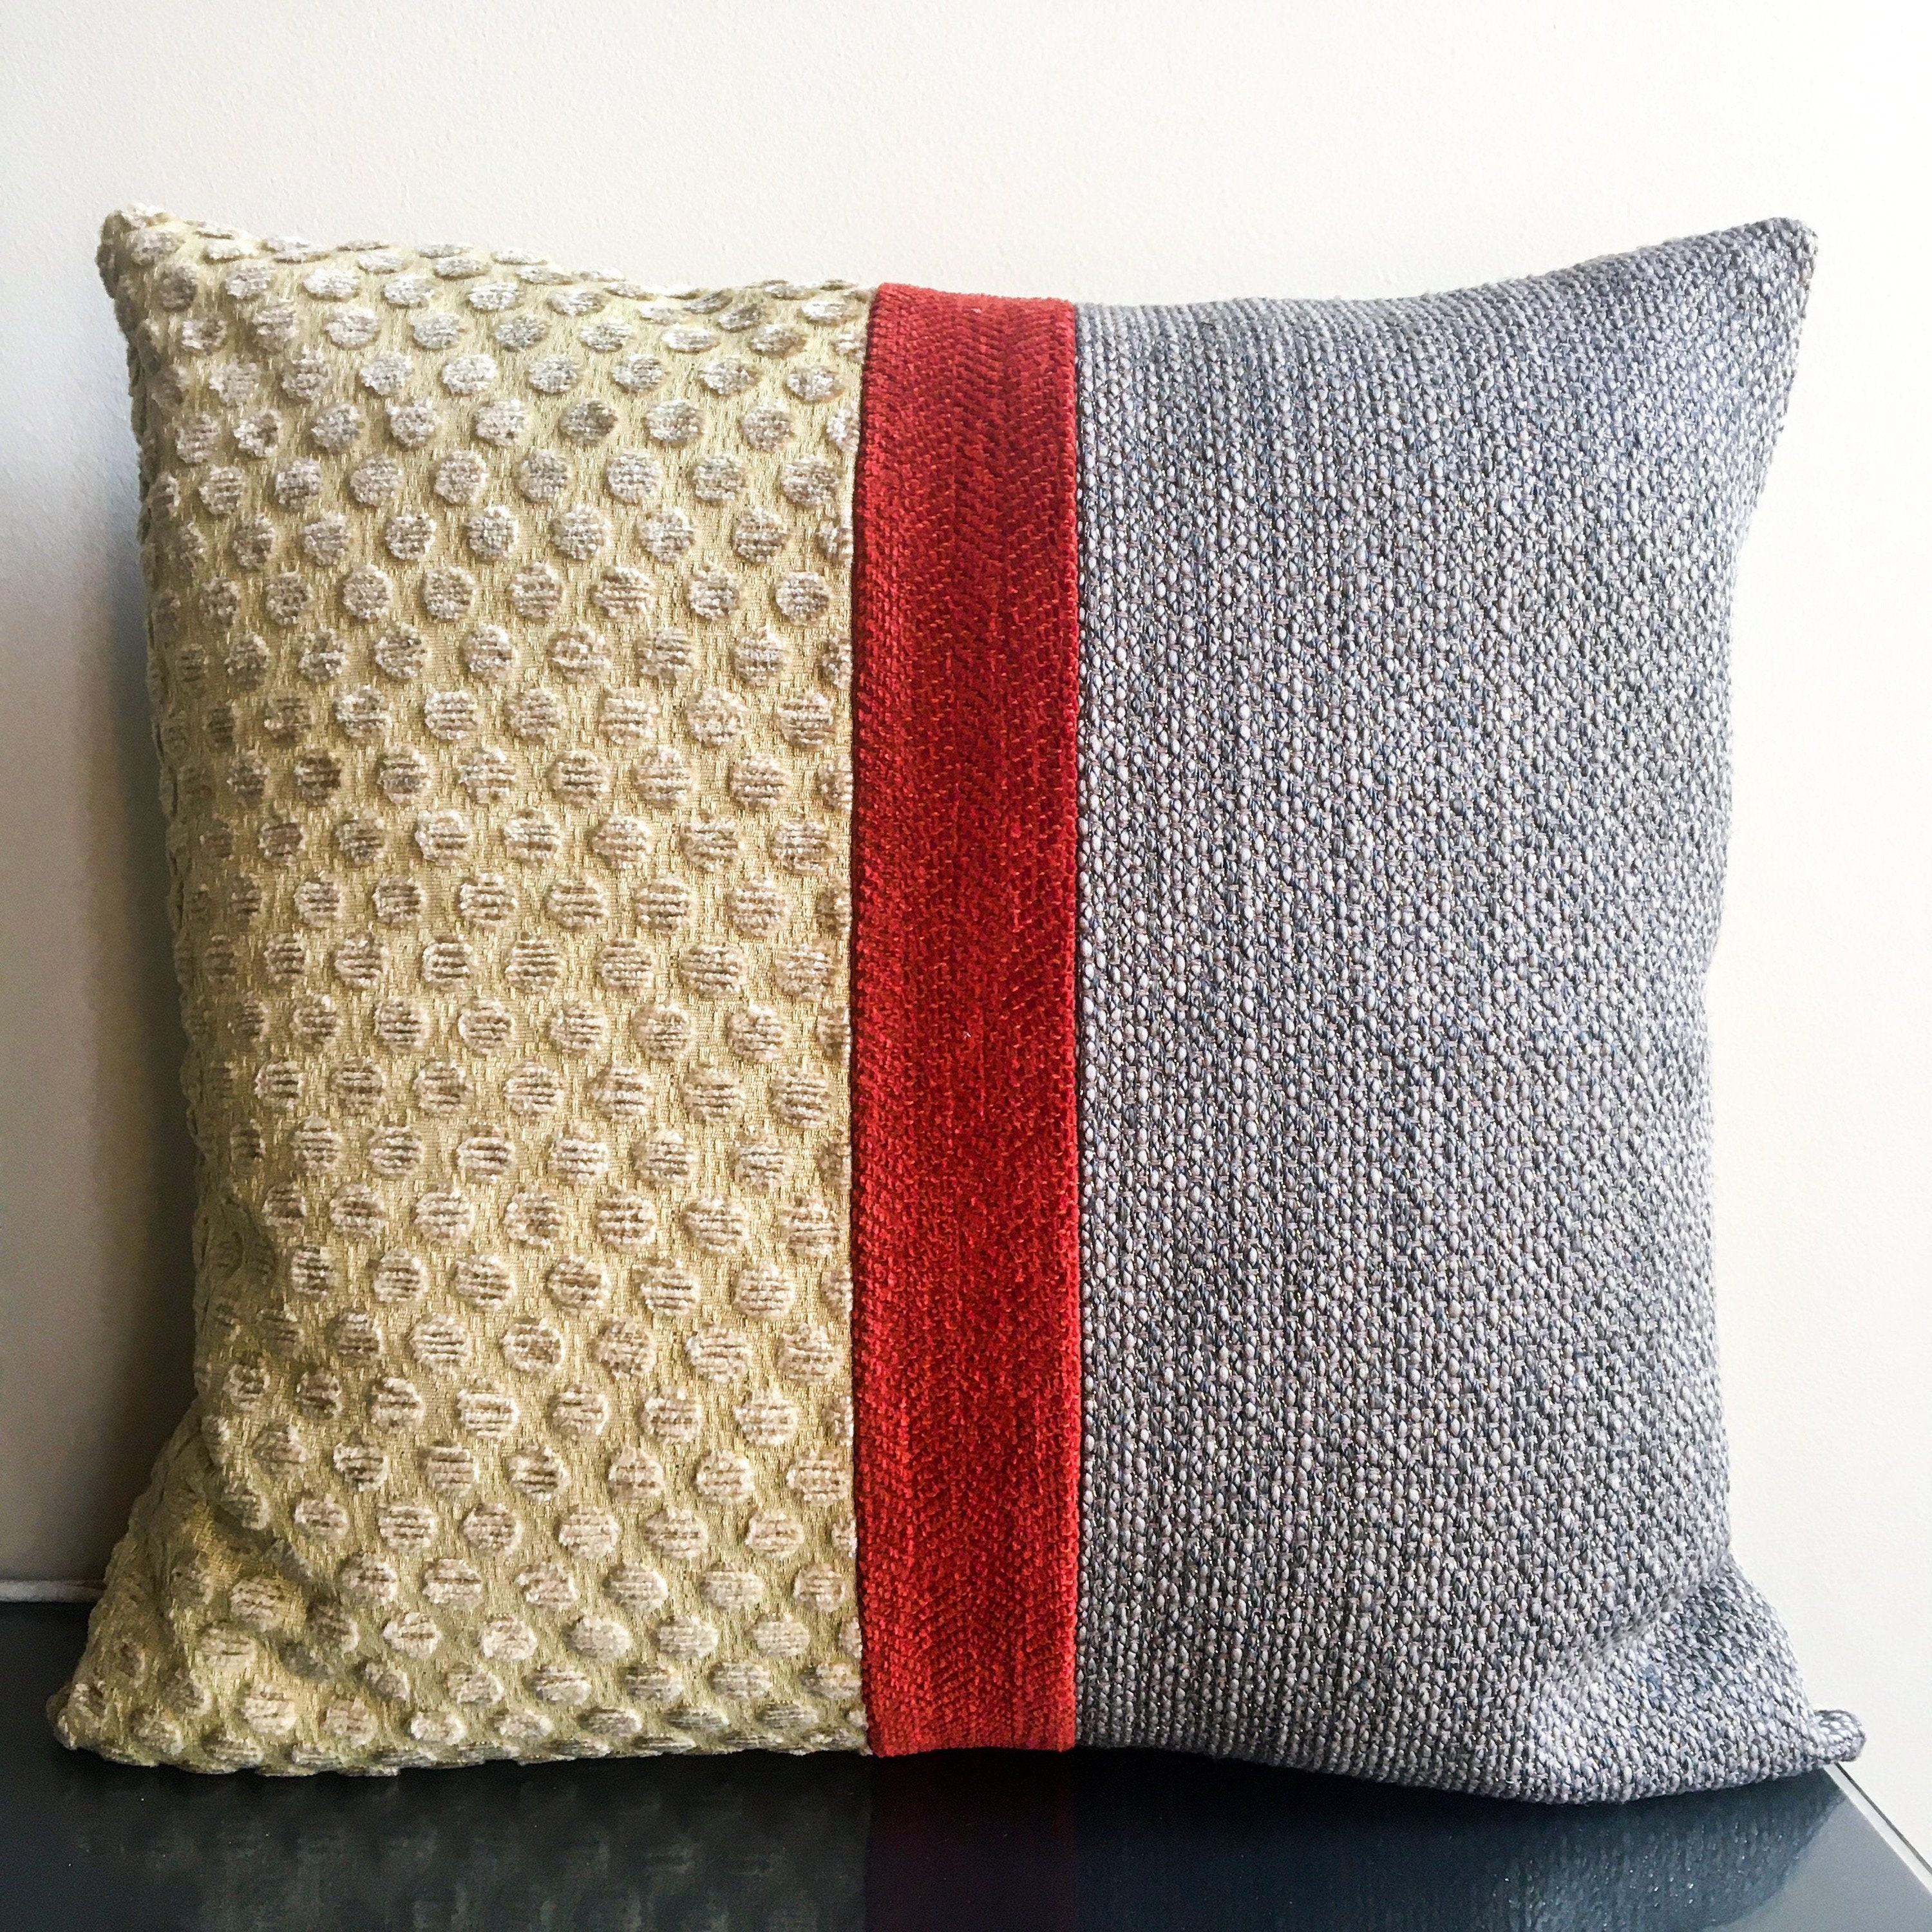 20x20 Color Blocked Textured Decorative Pillow Covers   Taupe, Light Gold, Rust Red   Neutral Contemporary Throw Pillows   Handmade USA  